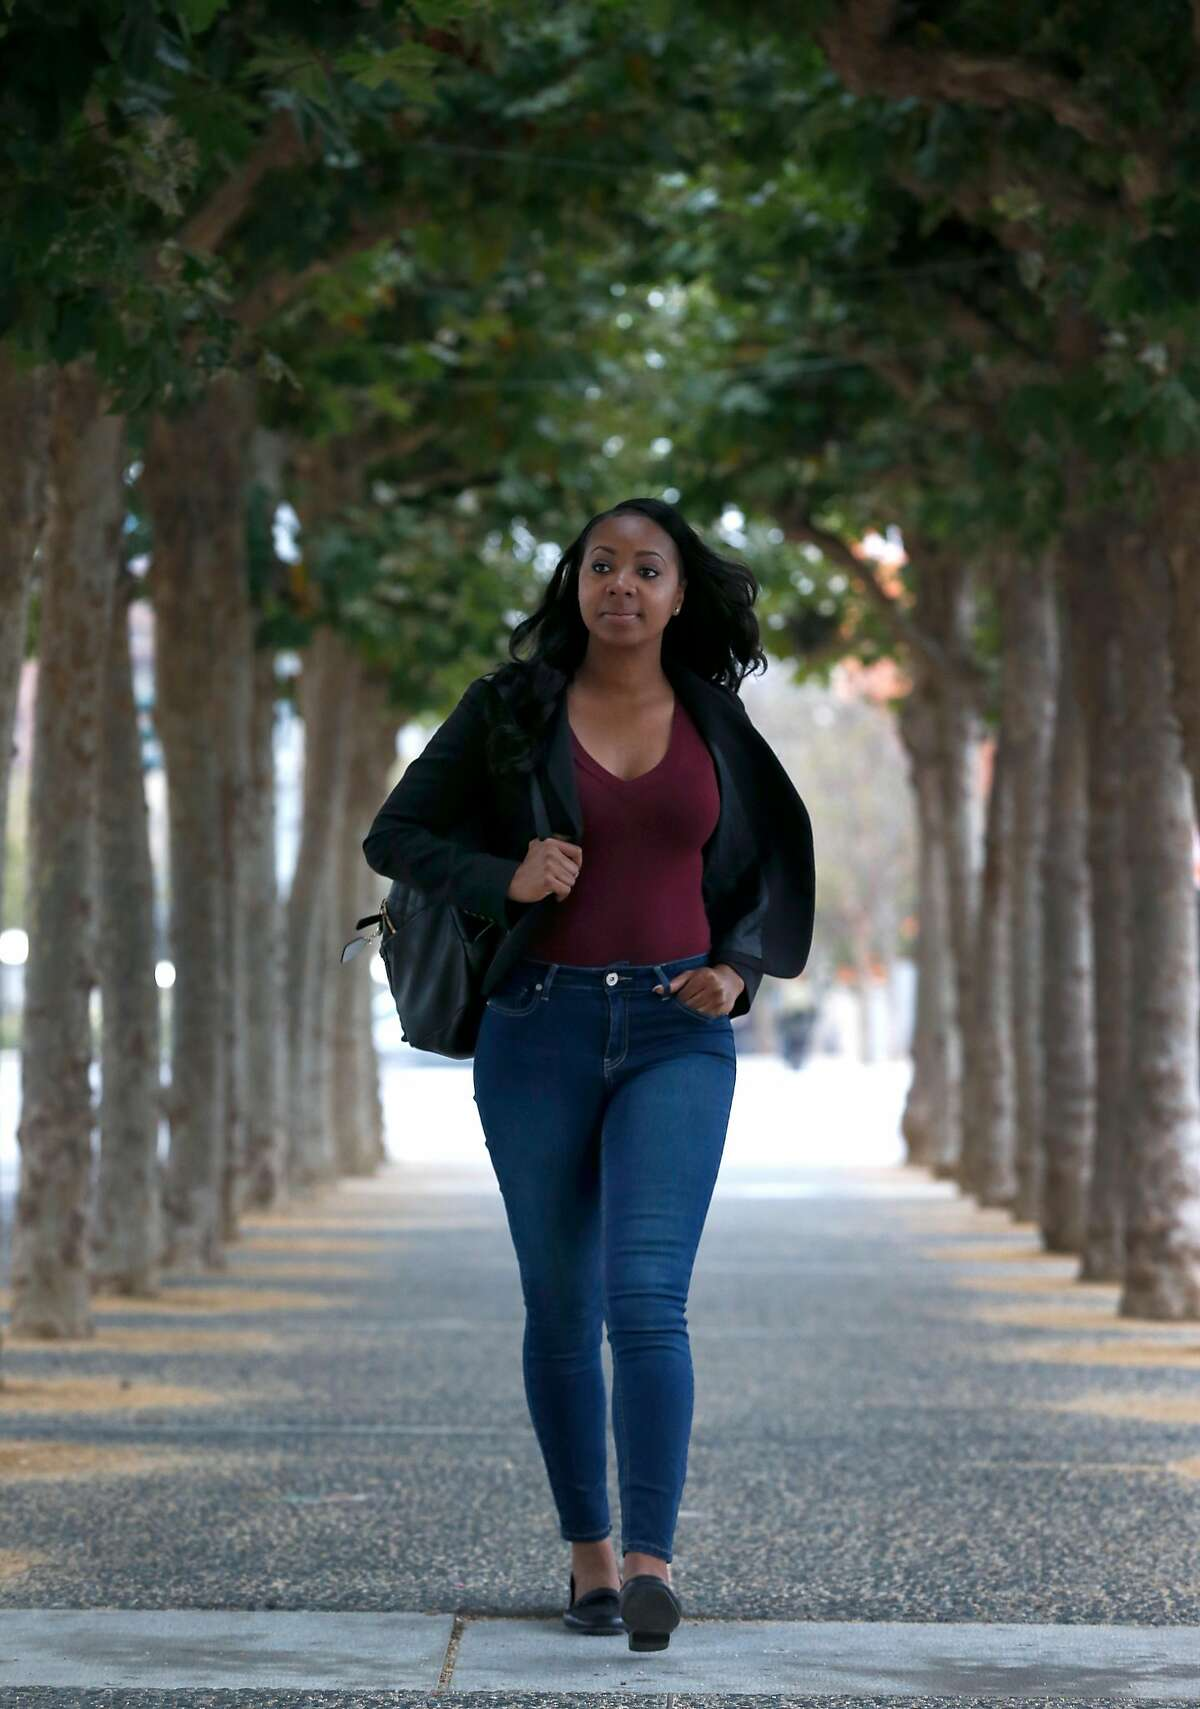 Sheena Lyons walks to her job near the Civic Center in San Francisco, Calif. on Thursday, Aug. 10, 2017 after recently completing vocational training from SVAcademy.